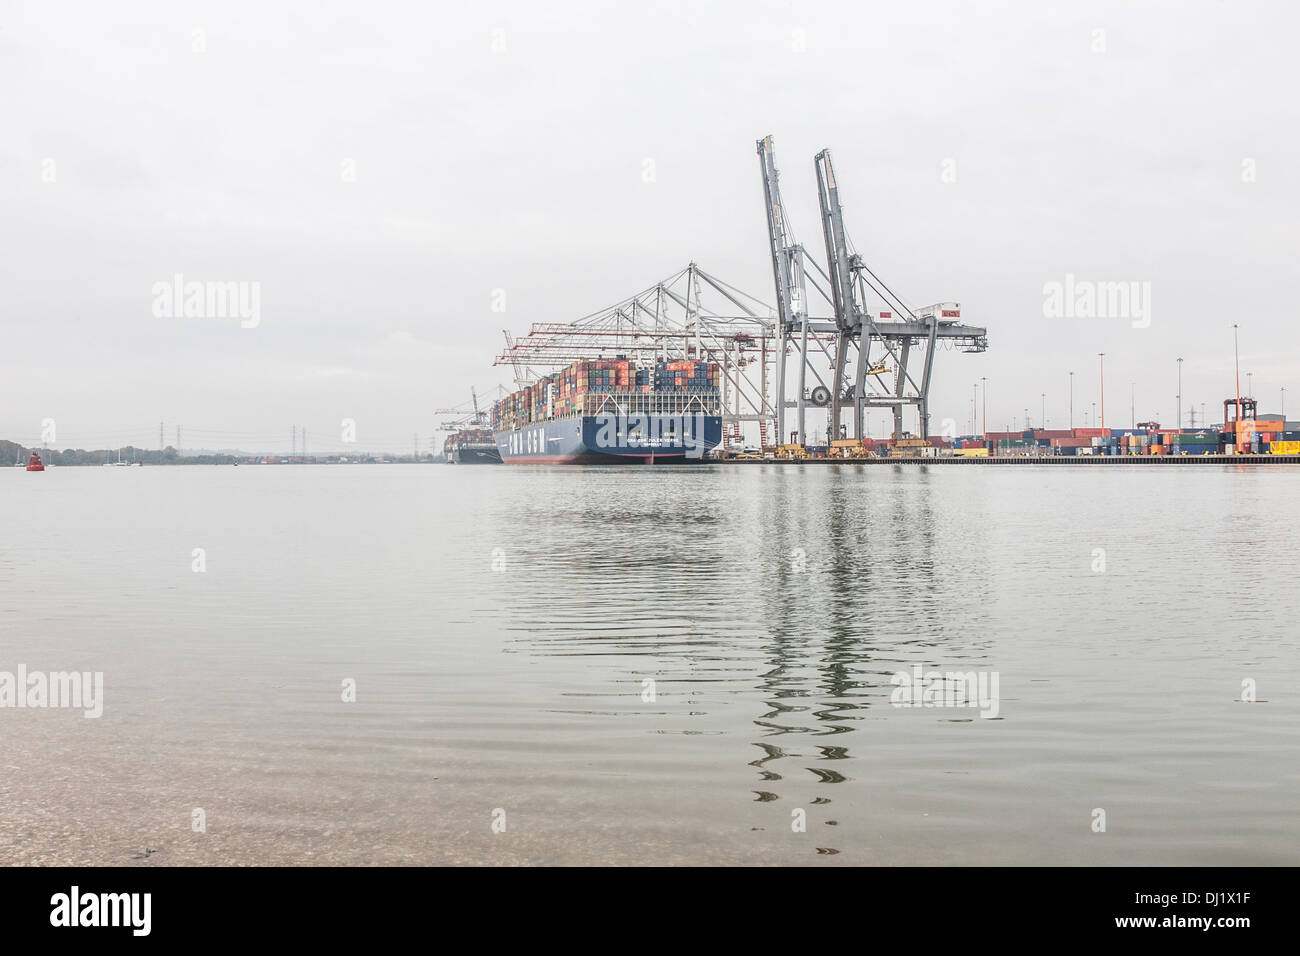 CMA CGM Jules Verne container ship, in port in Southampton, UK - Stock Image